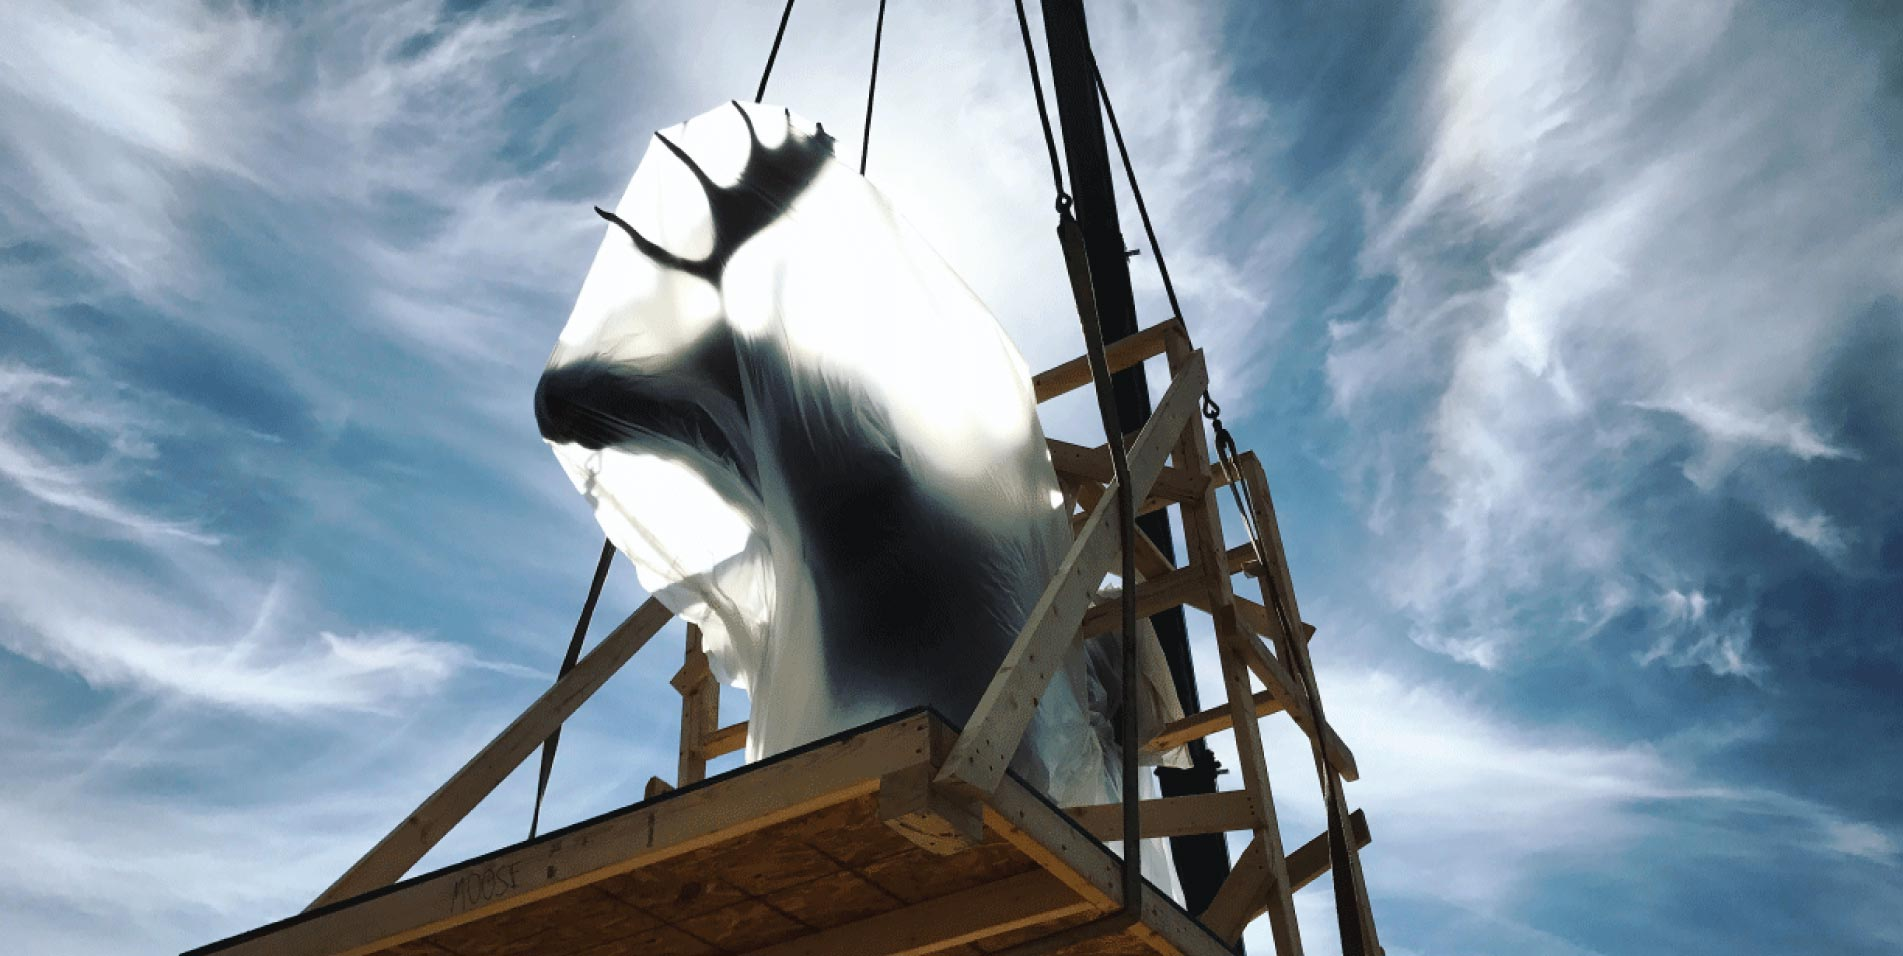 Taxidermied moose being craned into the new museum